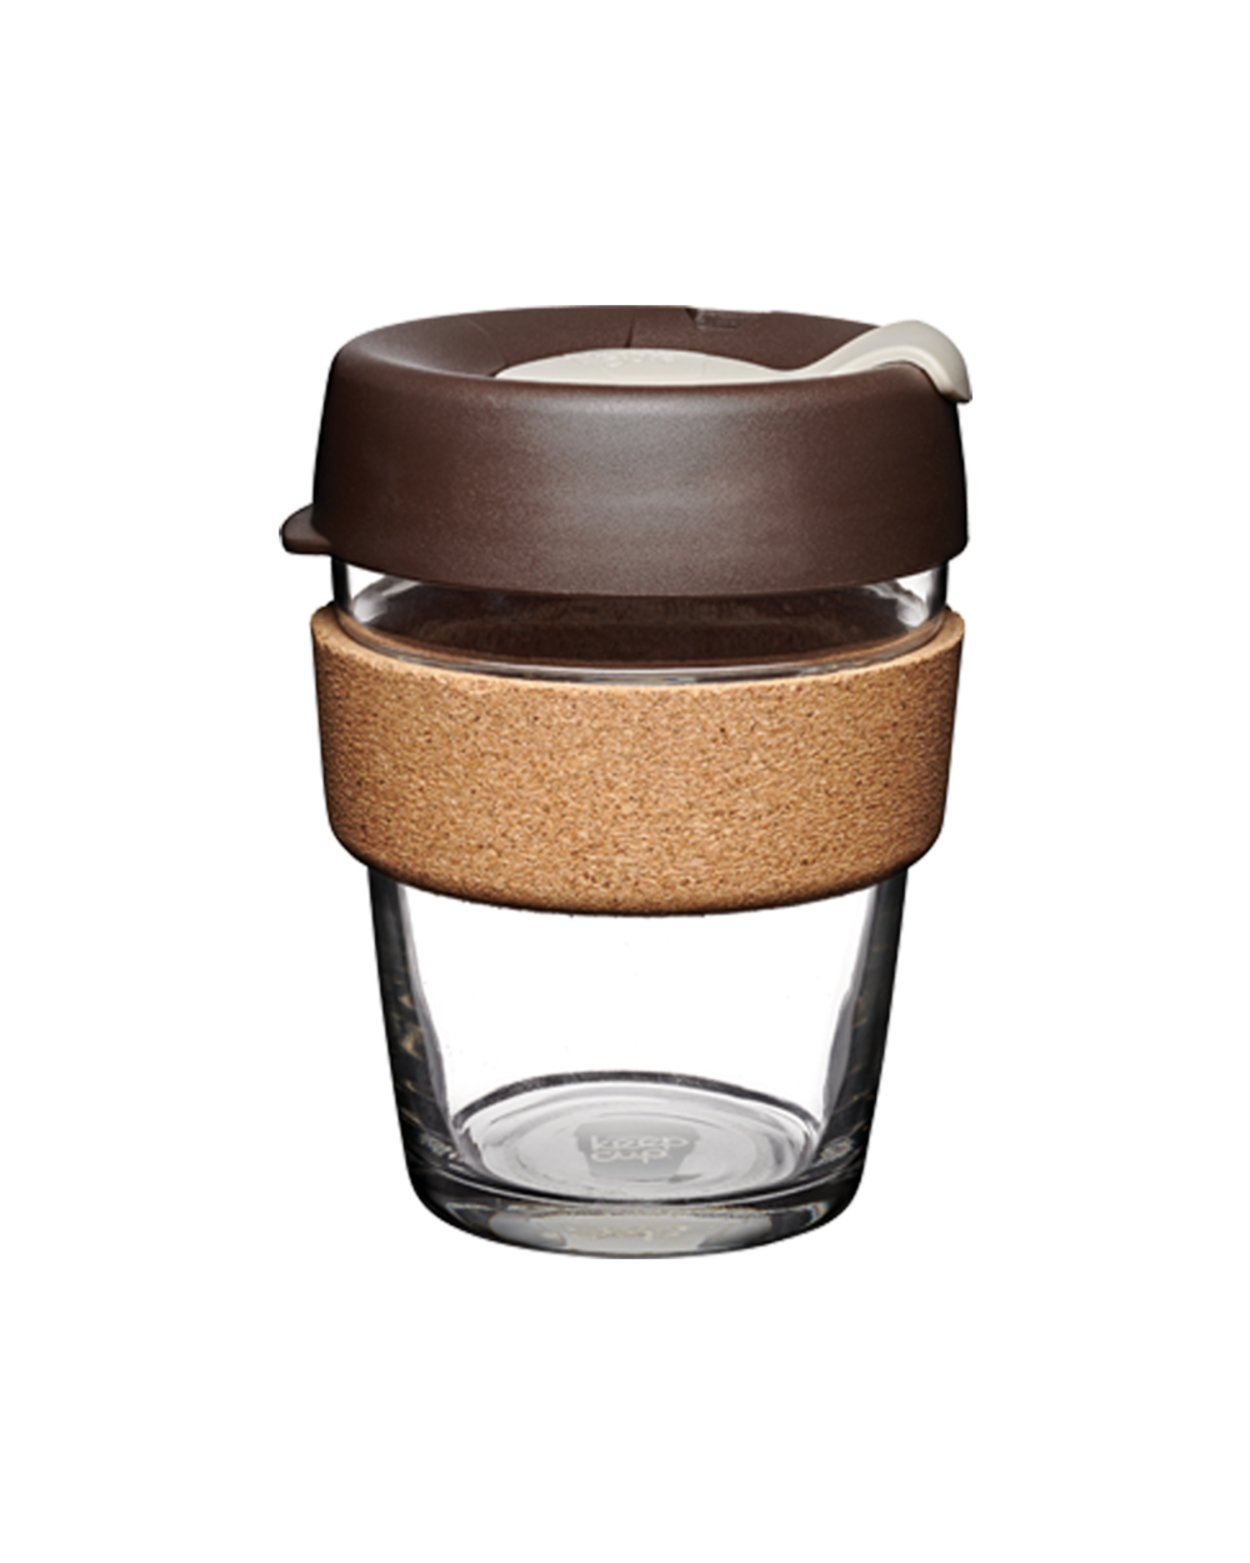 12oz Brew Cork Almond Keep Cup - The Force